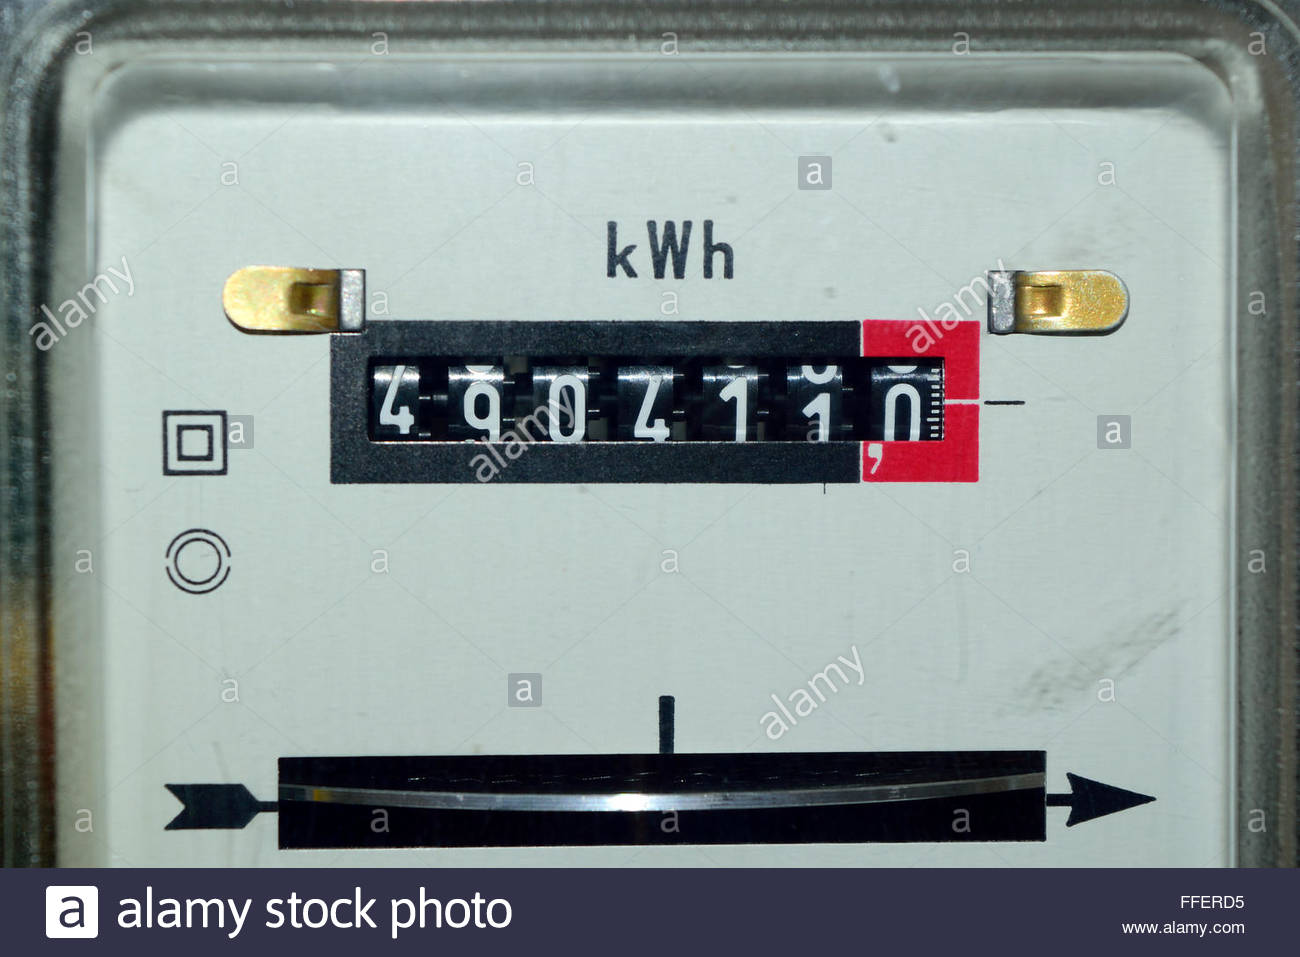 Electric meter - Stock Image